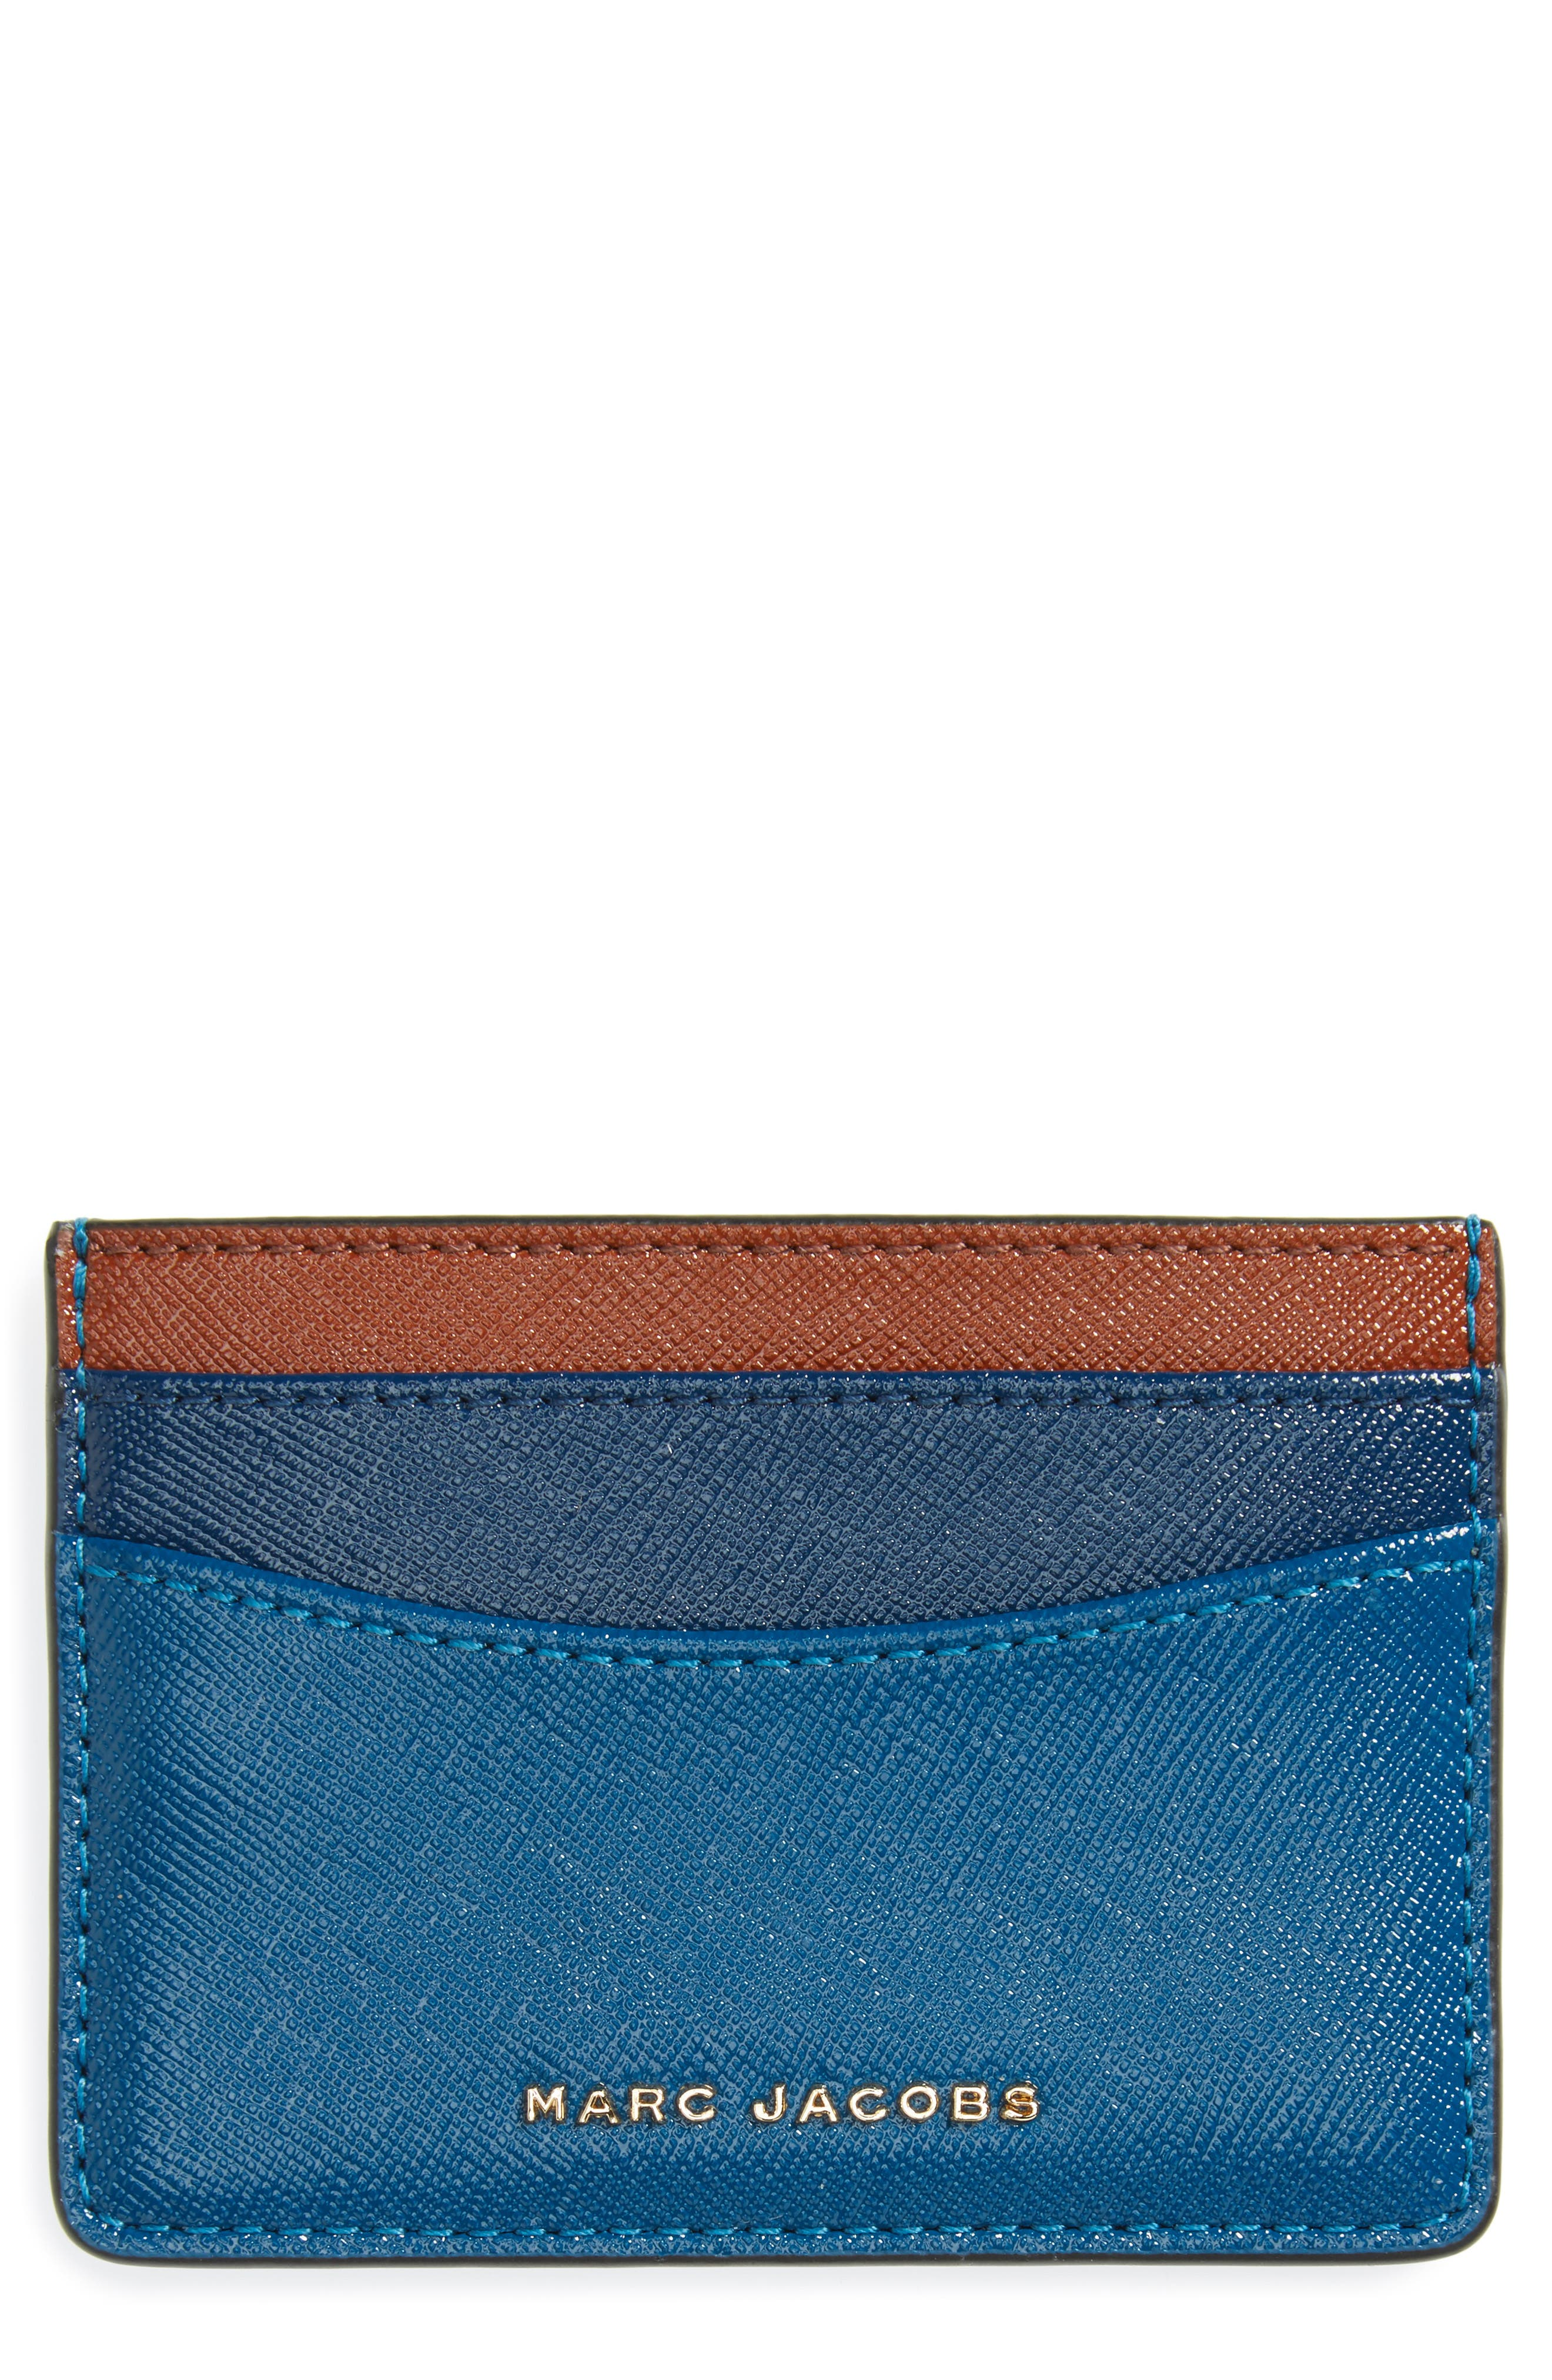 Main Image - MARC JACOBS Color Block Saffiano Leather Card Case